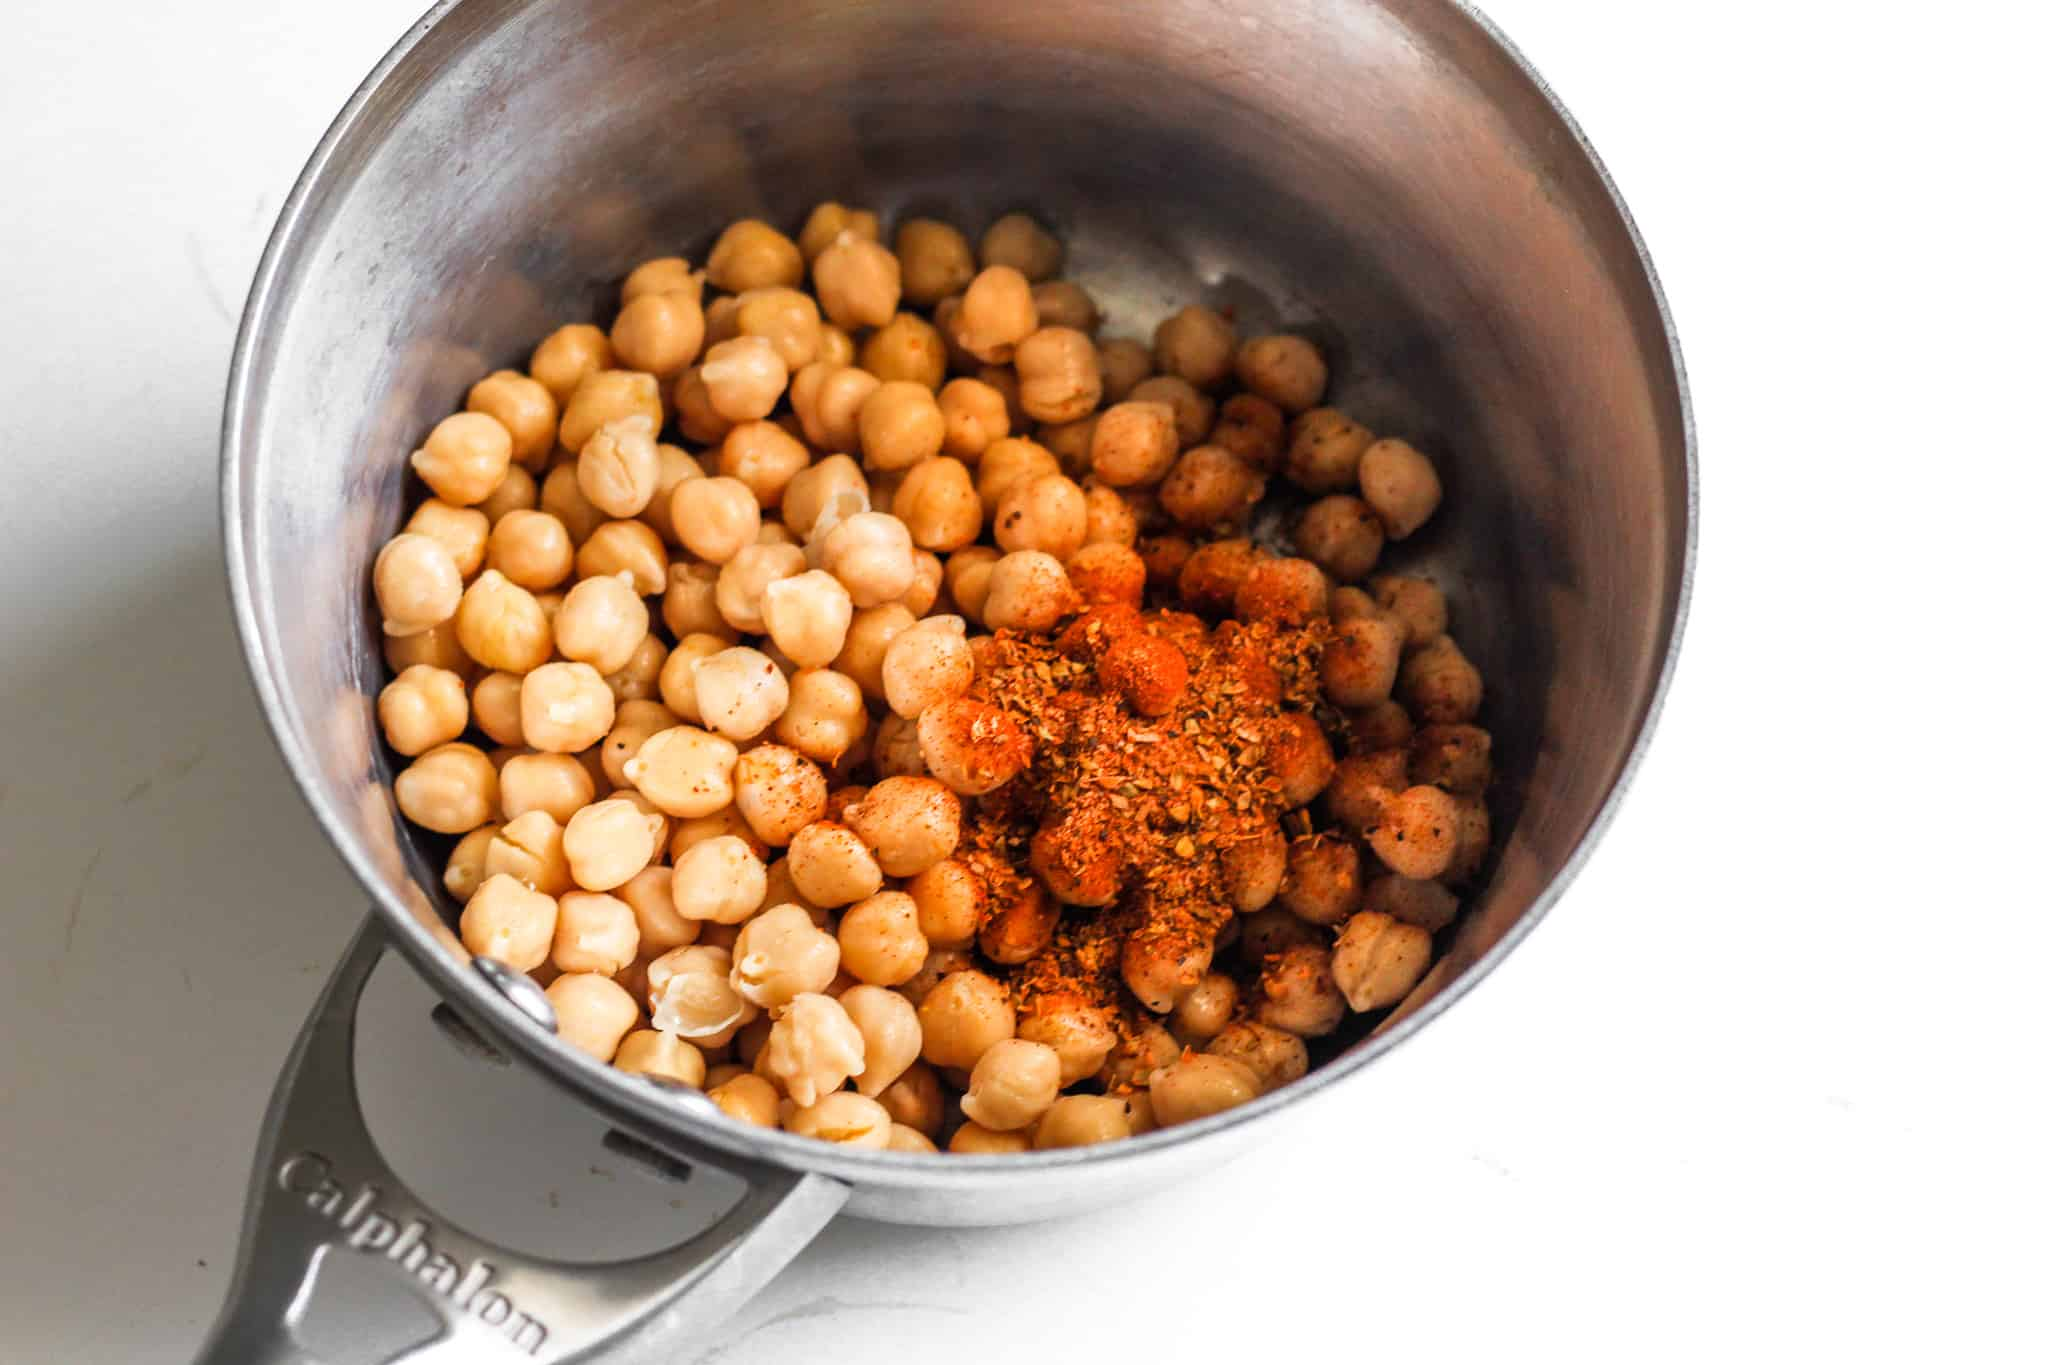 low FODMAP Taco Seasoned Chickpeas #glutenfree #tararochfordnutrition #lowfodmap #vegan